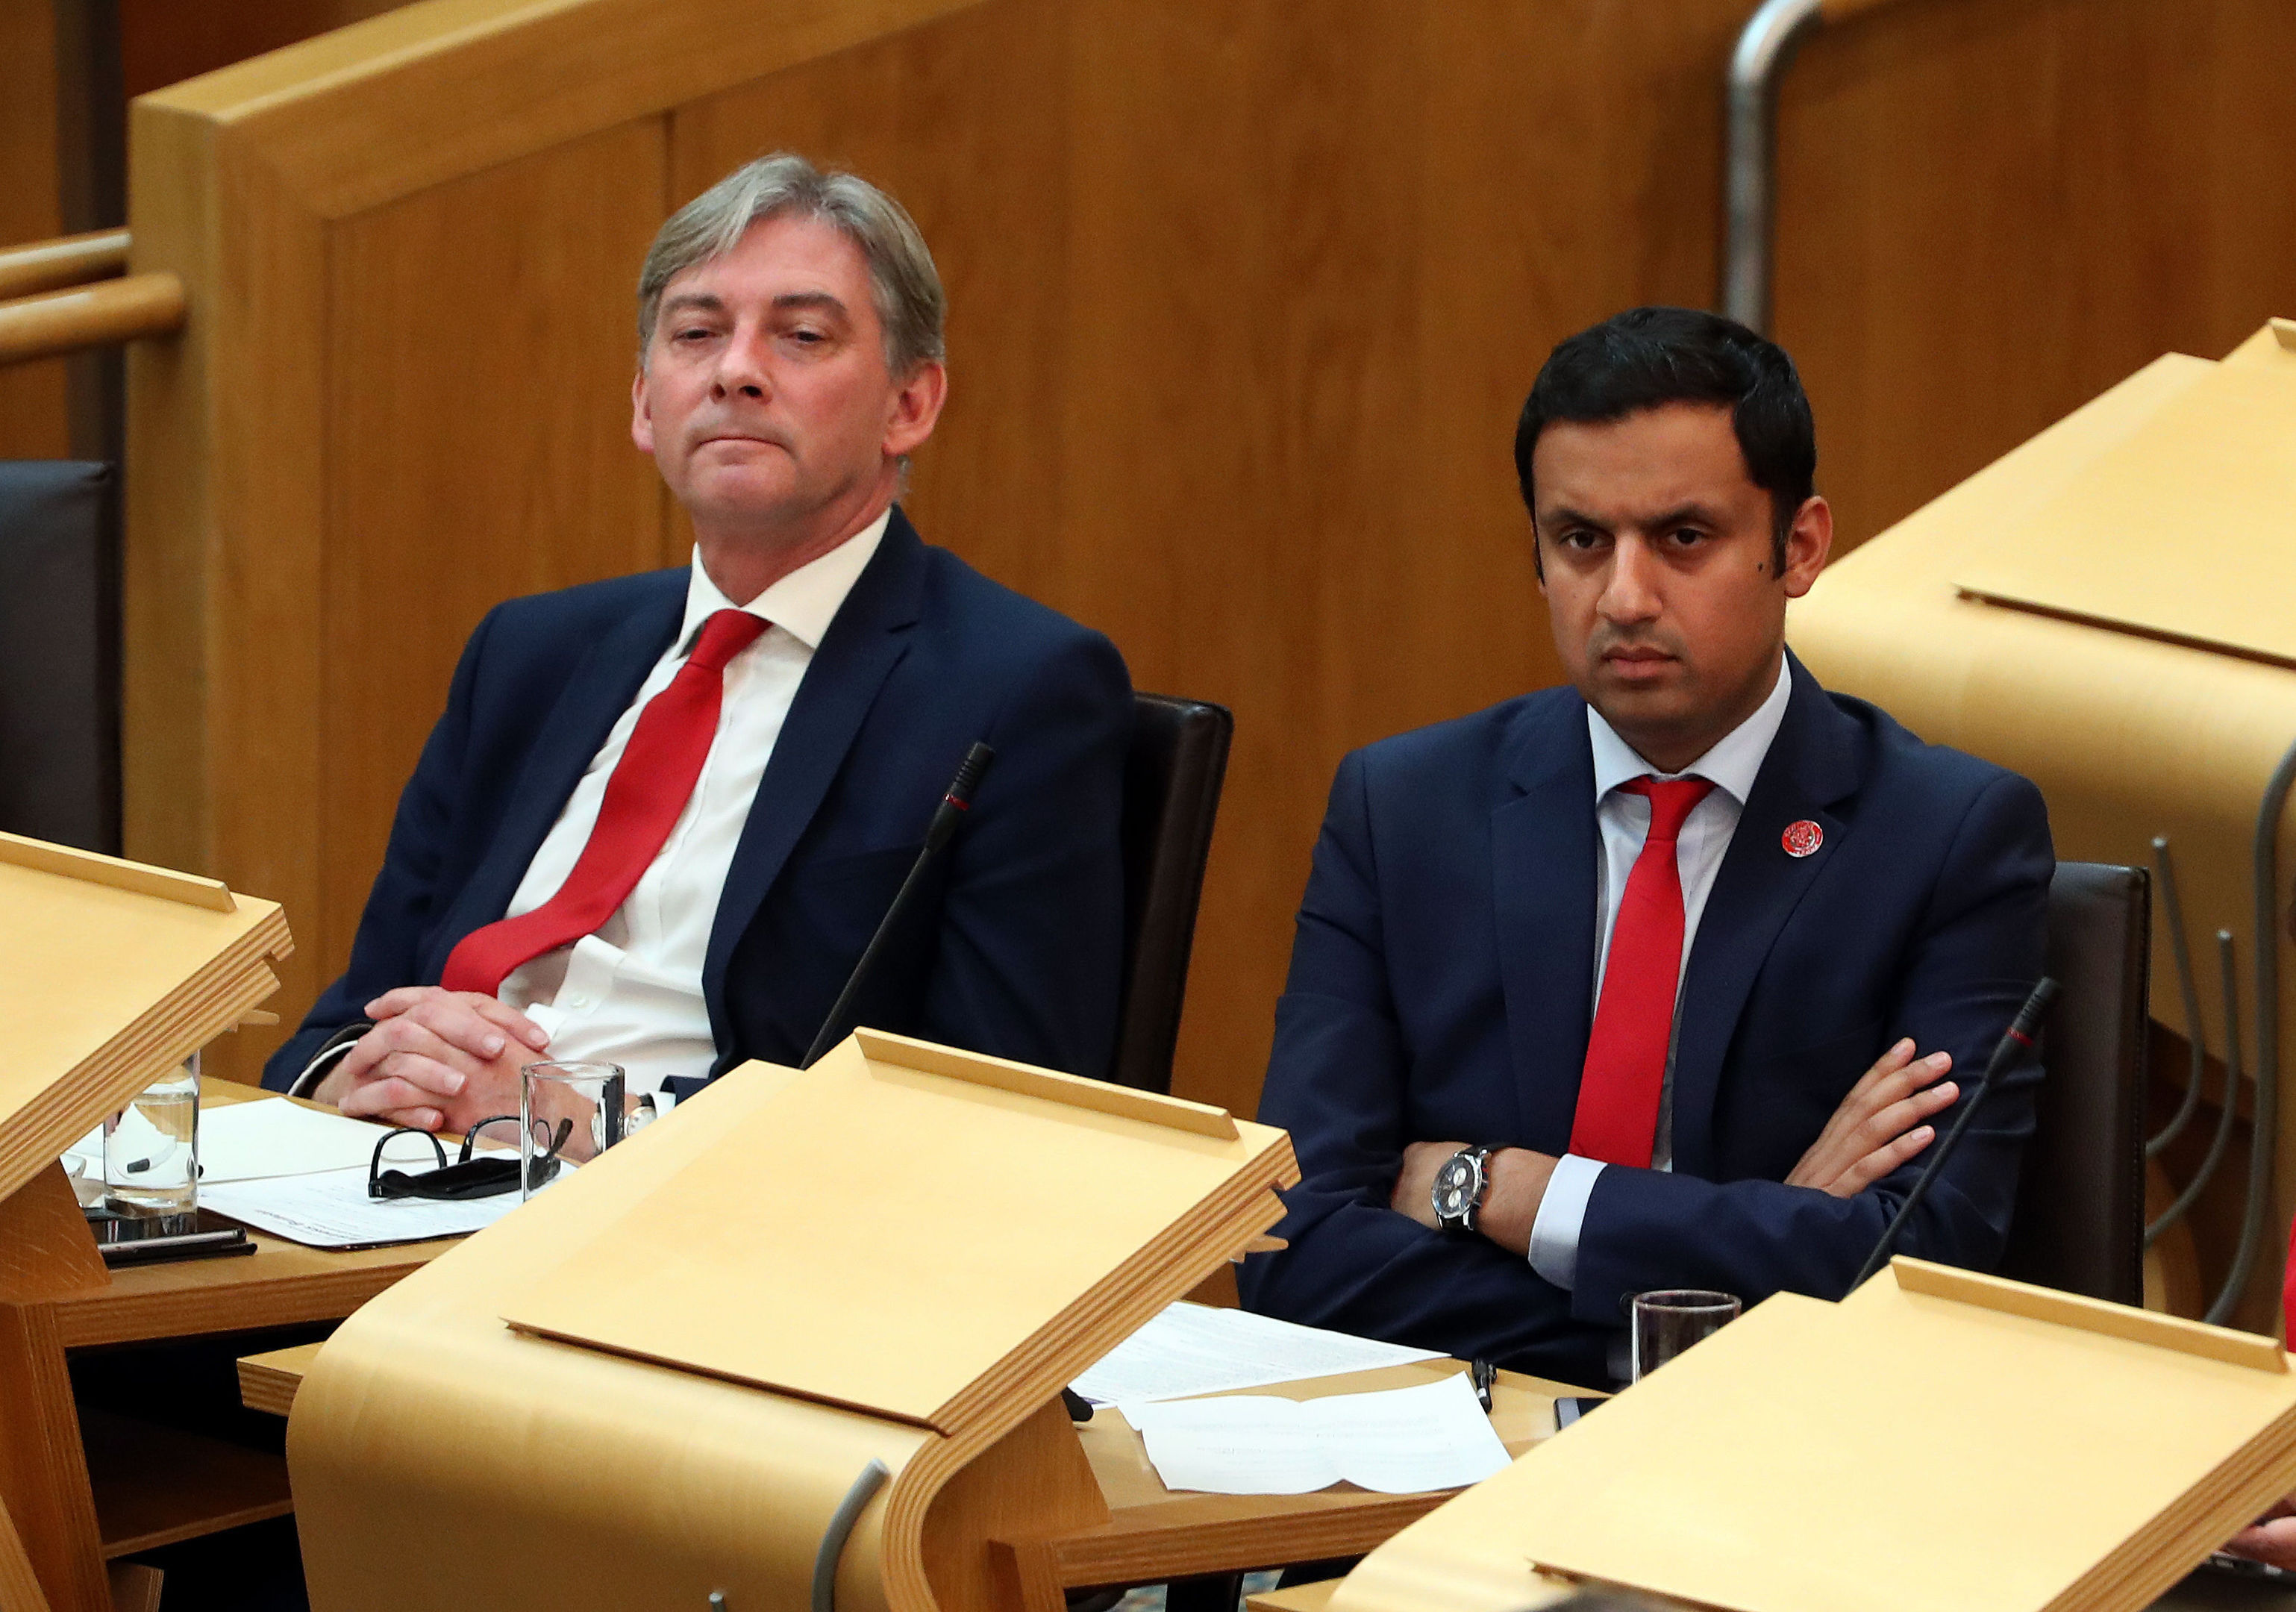 Scottish Labour leadership candidates Richard Leonard (left) and Anas Sarwar. (Andrew Milligan/PA Wire)